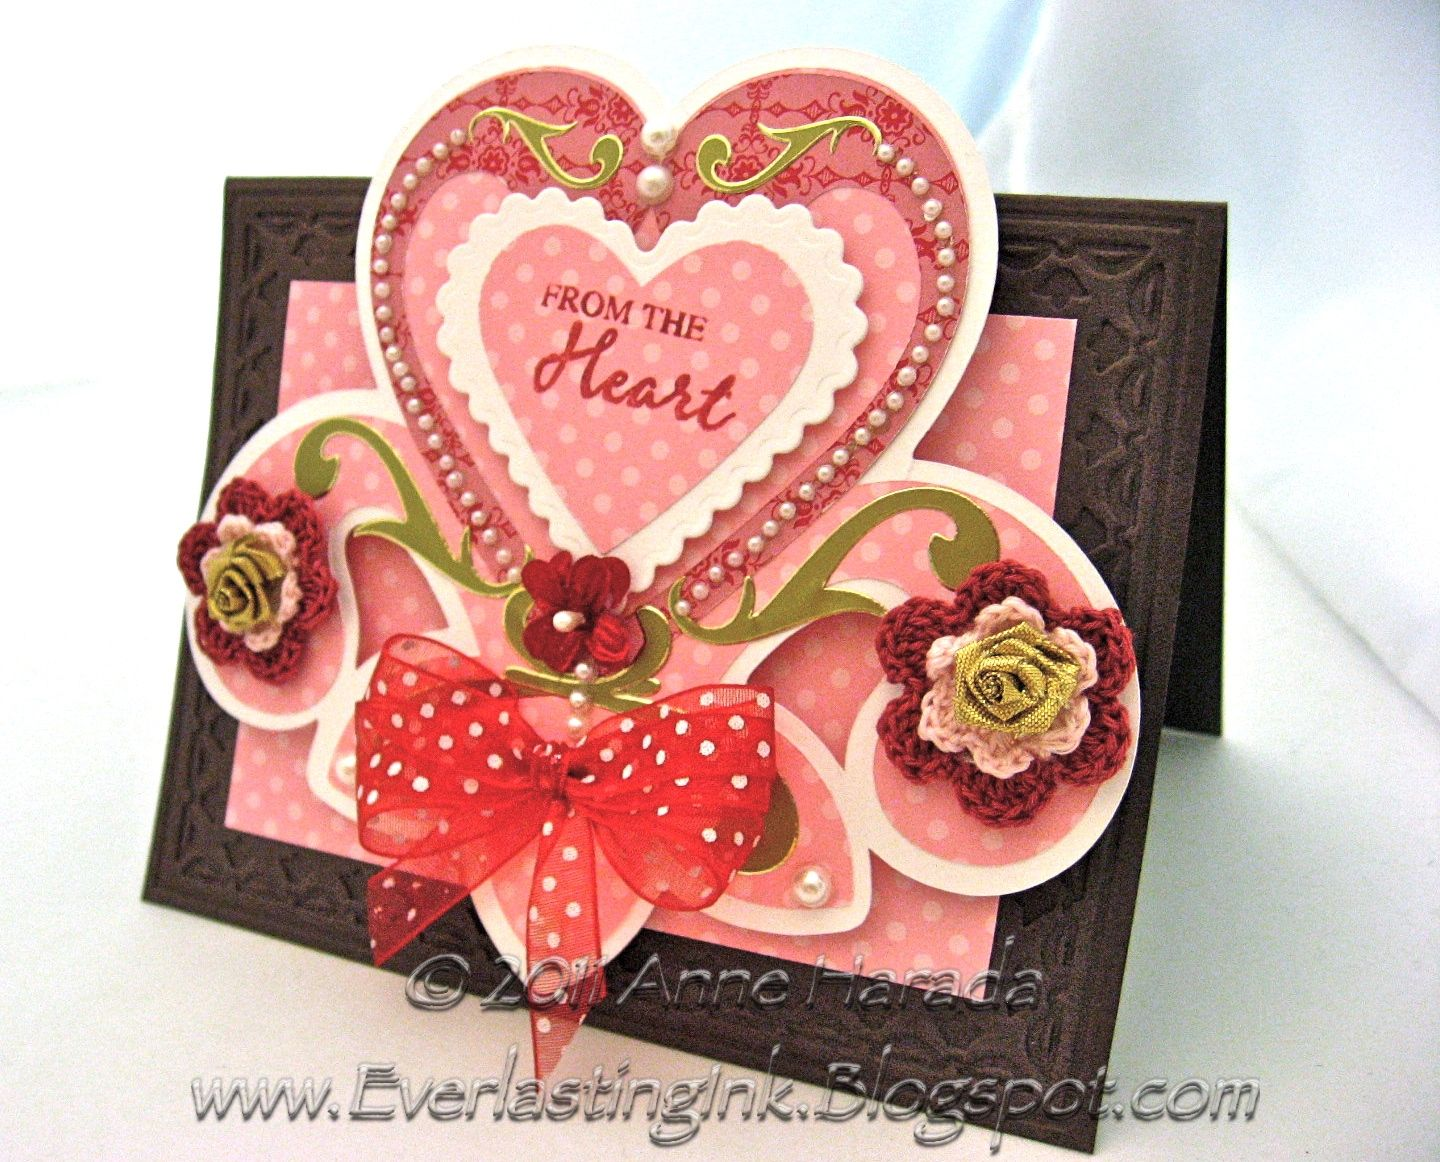 Cards Made With Cricut Florals Embellished Hurry Over To The